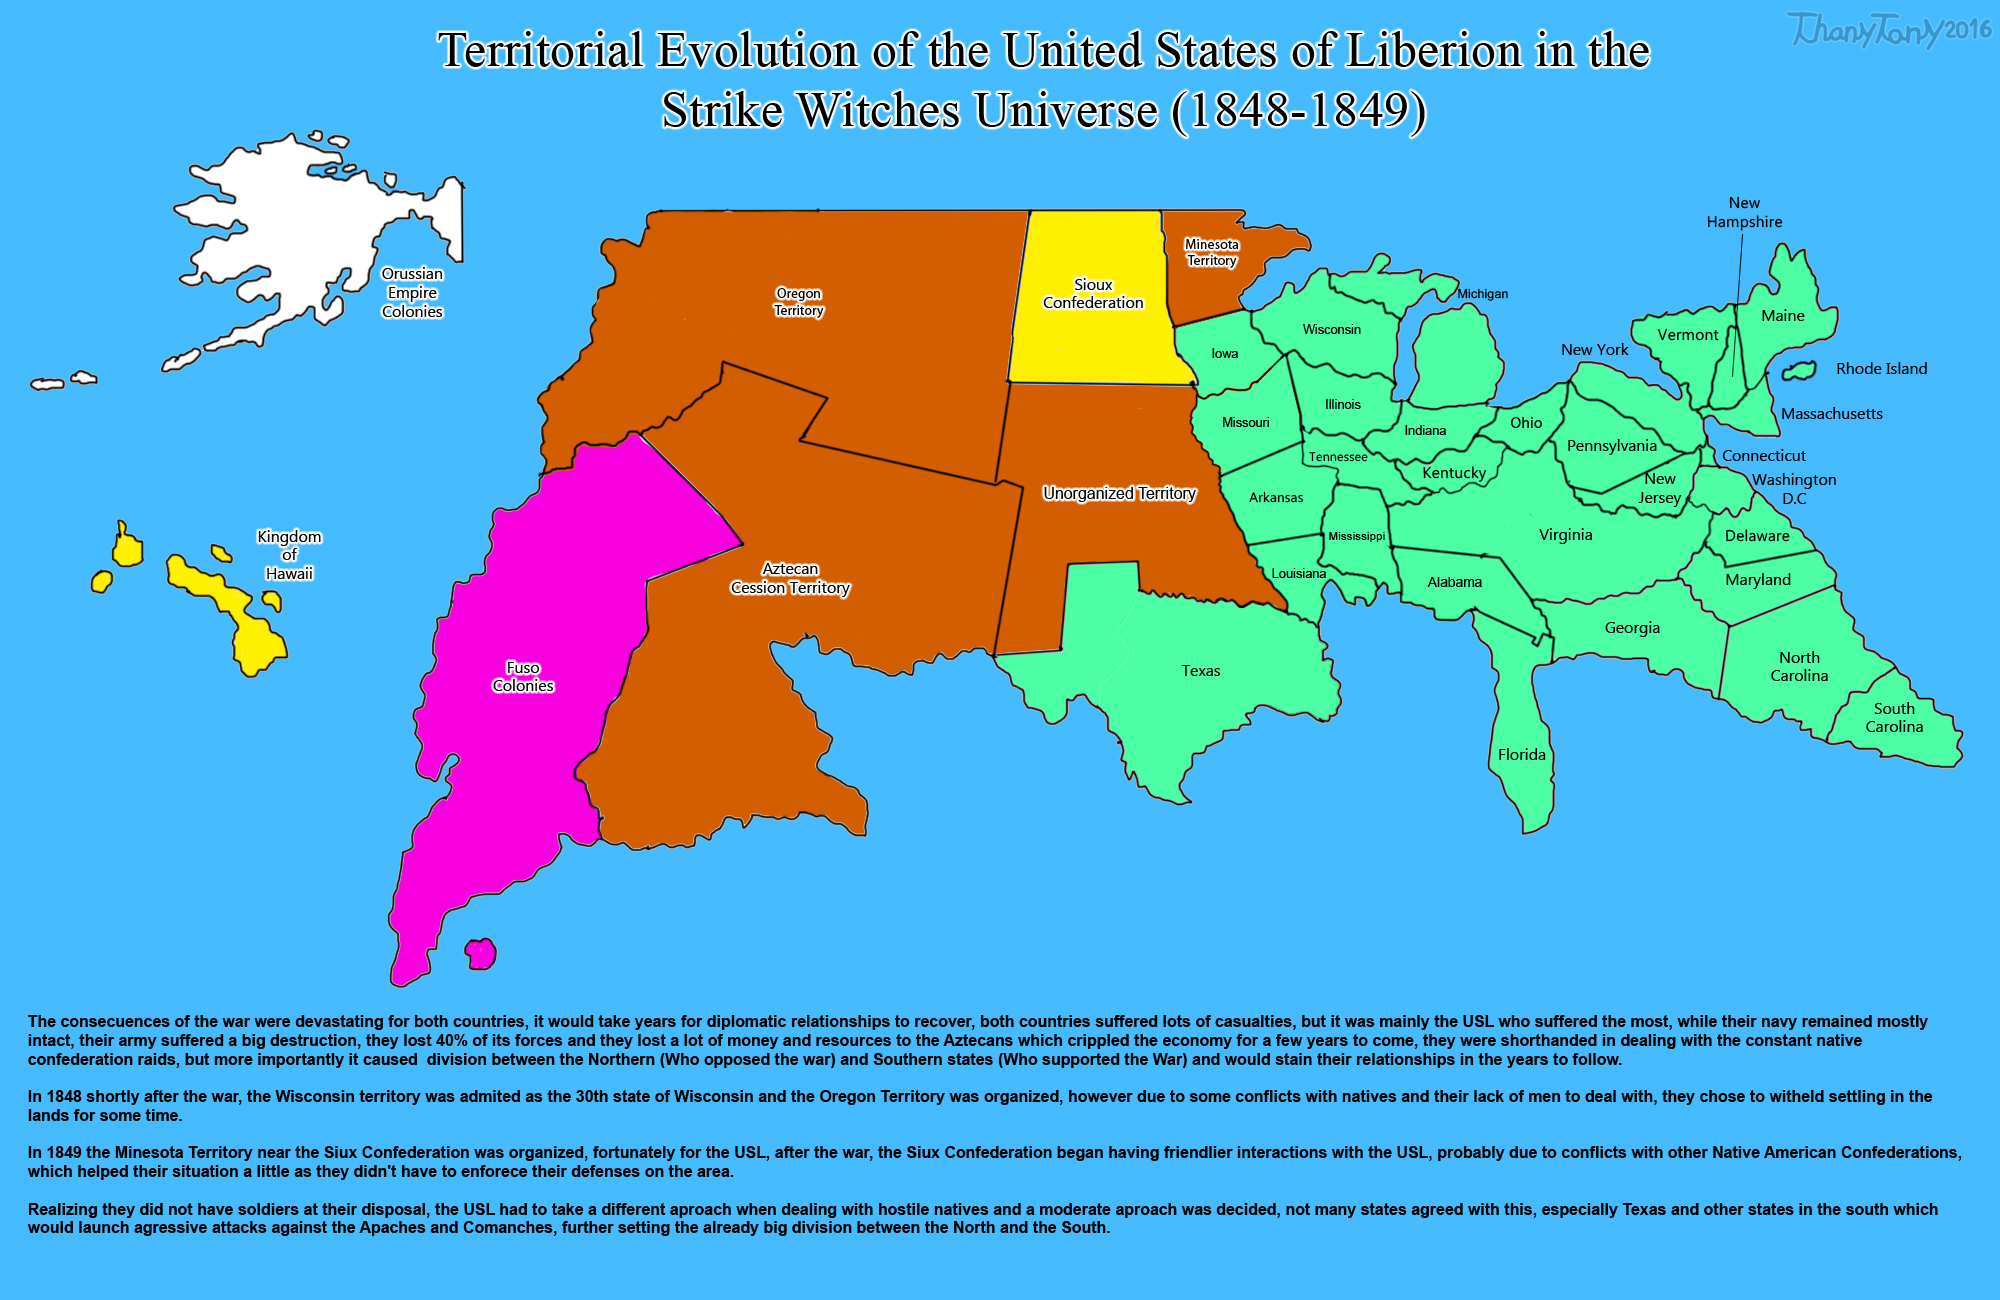 SW: Territorial Evolution of the United States 9 by ThanyTony